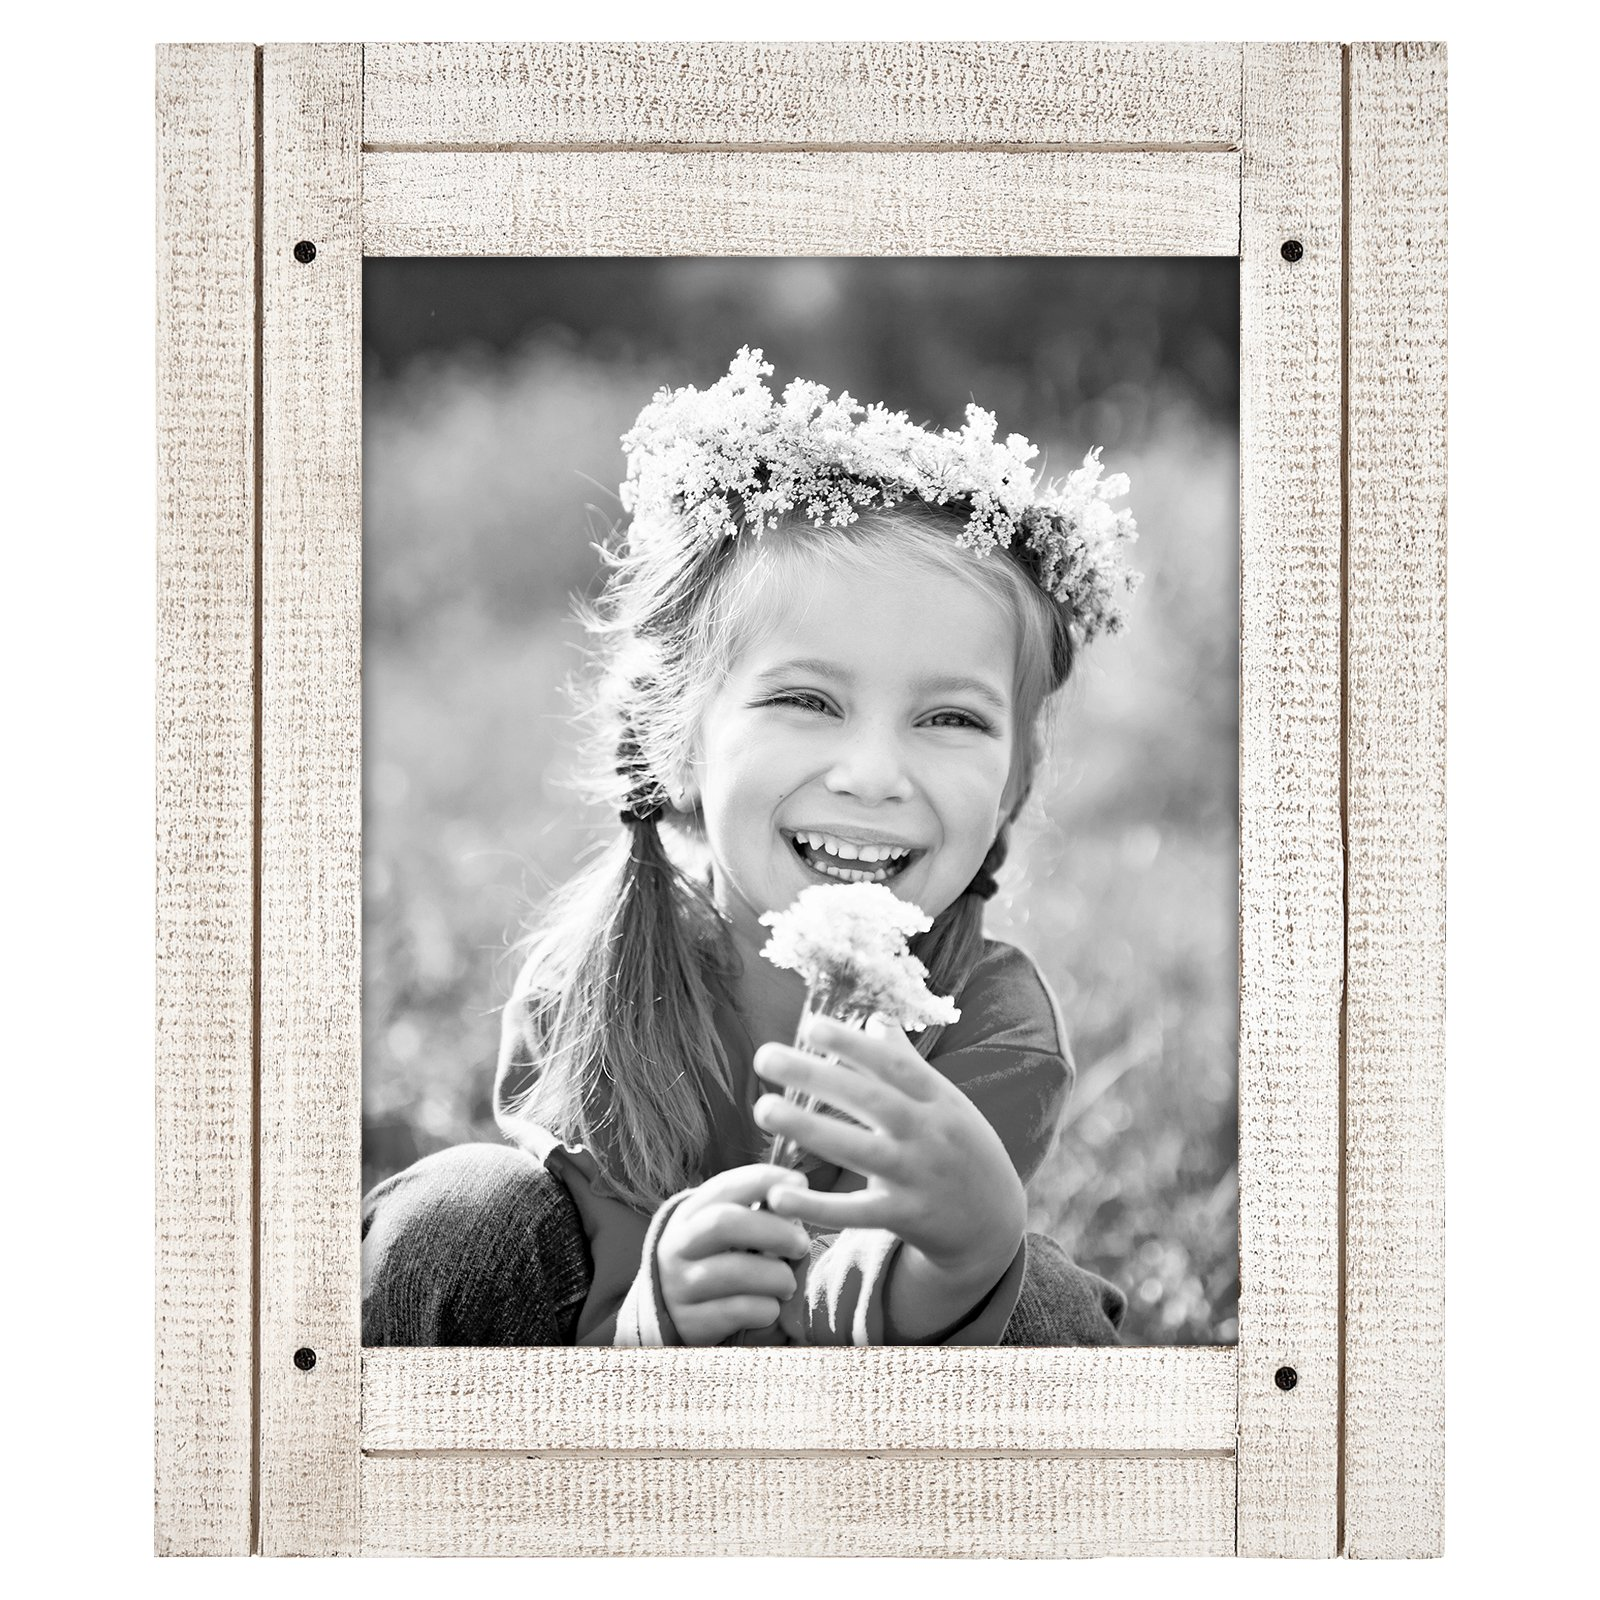 Americanflat 8x10 Aspen White Distressed Wood Frame - Made to Display 8x10 Photos - Ready to Hang - Ready to Stand - Built-in Easel by Americanflat